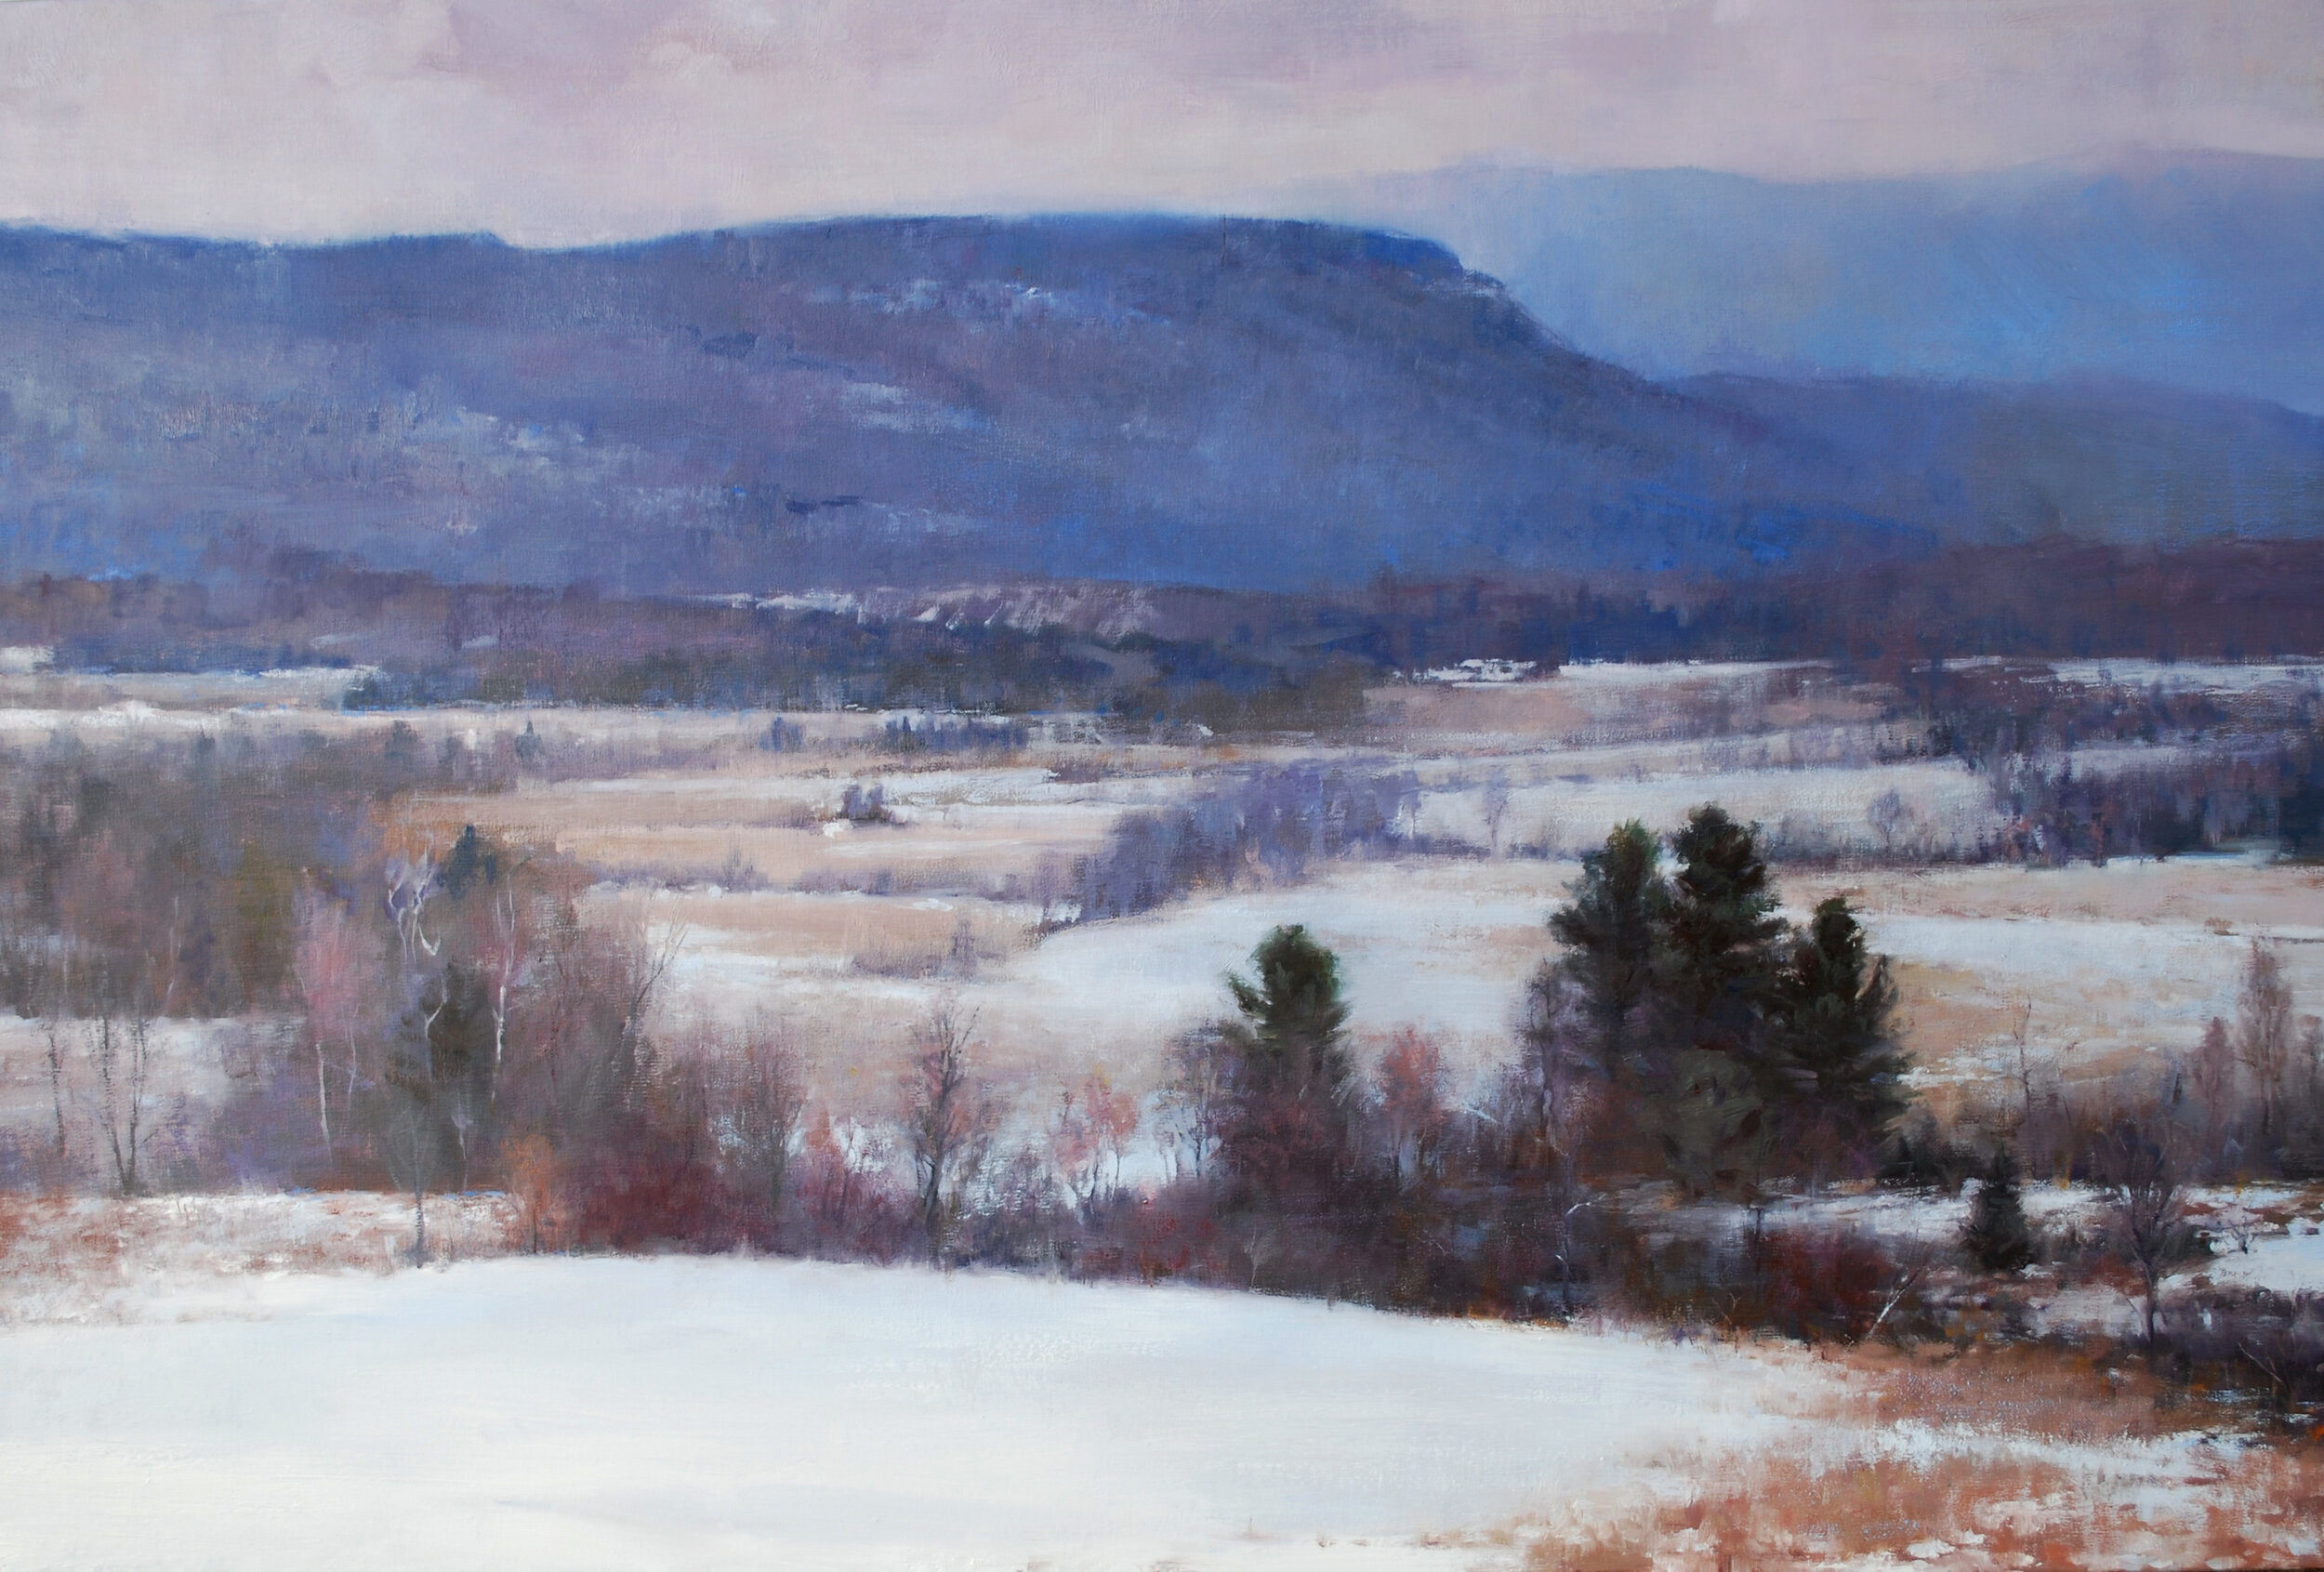 66 The Winter Blues, Oil on Linen, 24 x 36 inches, 2012.jpg